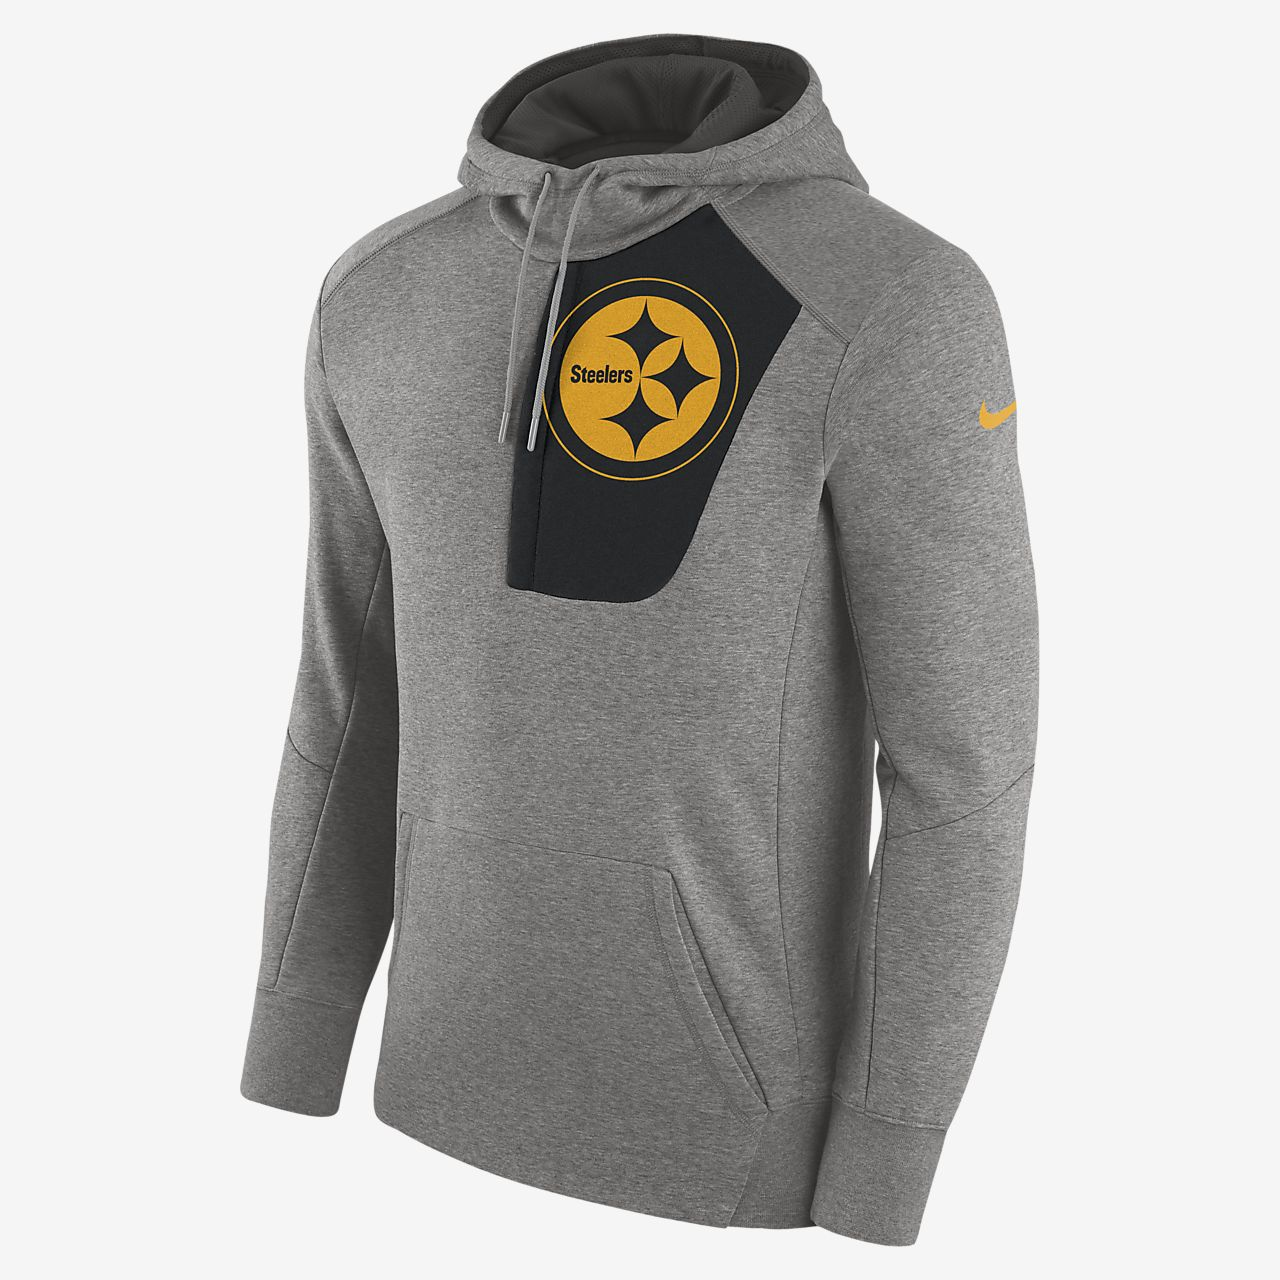 Nike Fly Fleece (NFL Steelers) Men's